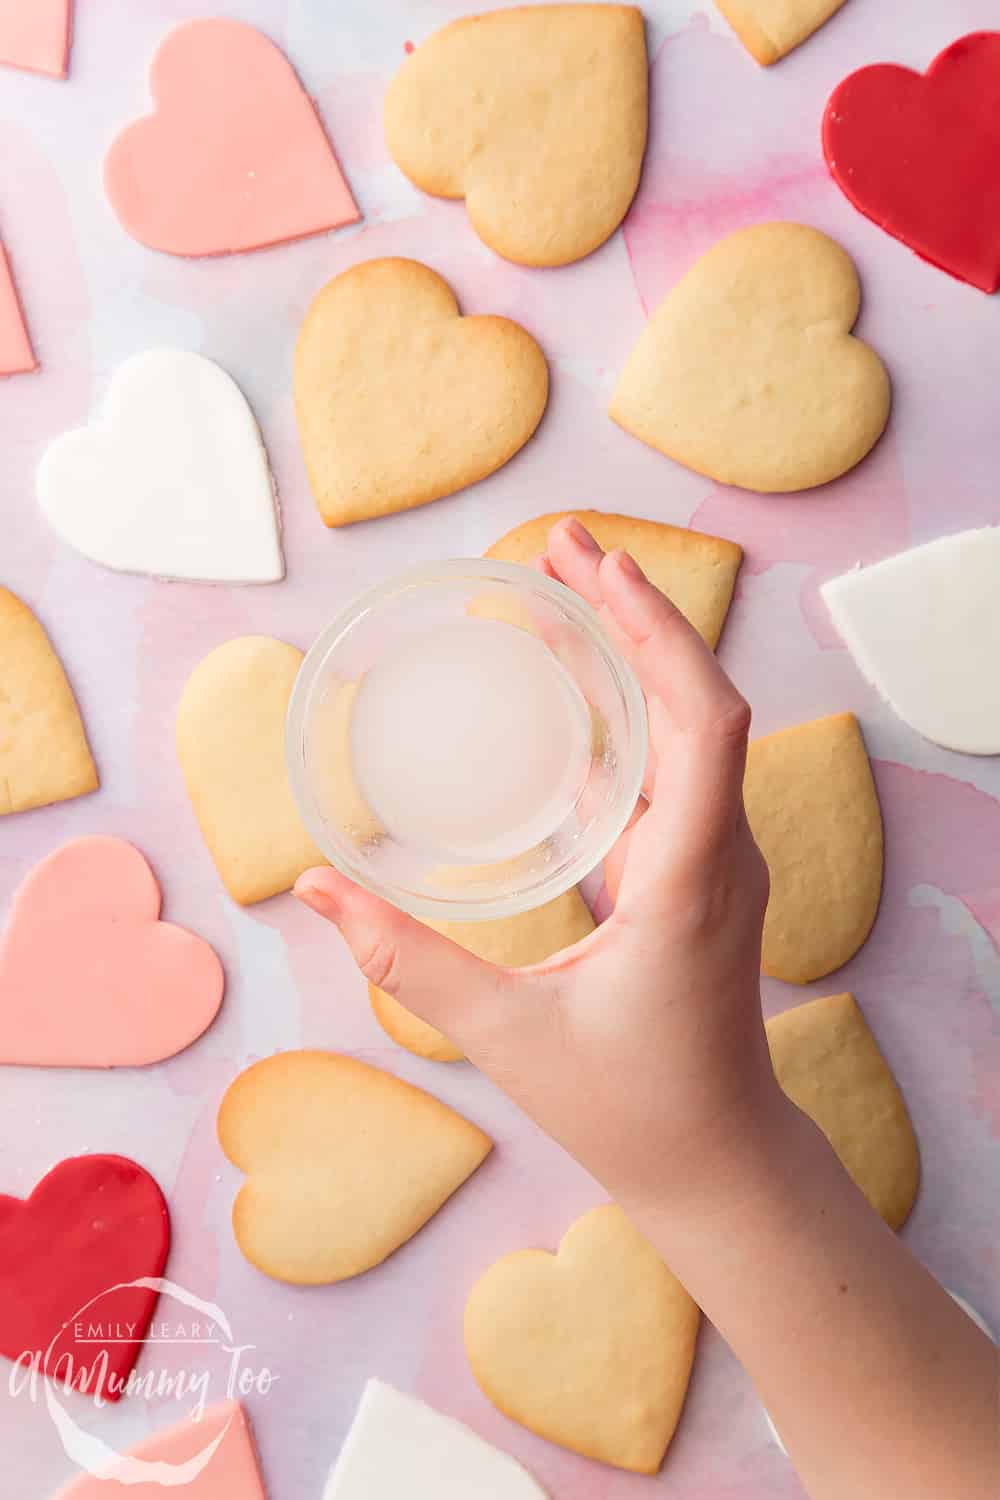 Overhead shot of a hand holding a small clear dish with icing sugar over Heart biscuit for Valentine's Day with a mummy too logo in the lower-right corner